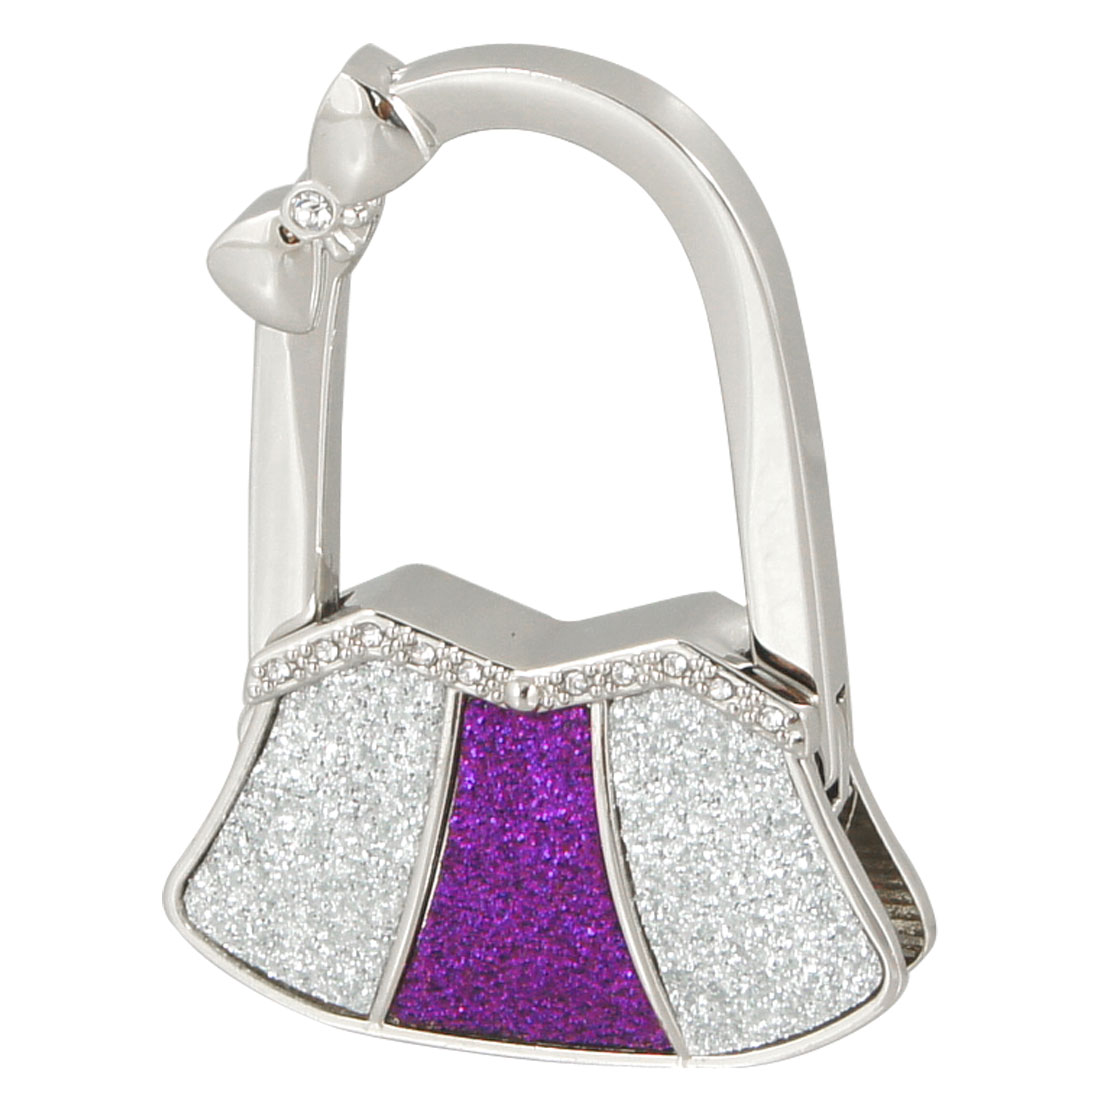 Glitter Purple Silver Tone Metal Bowknot Decor Bag Shaped Folding Handbag Hook